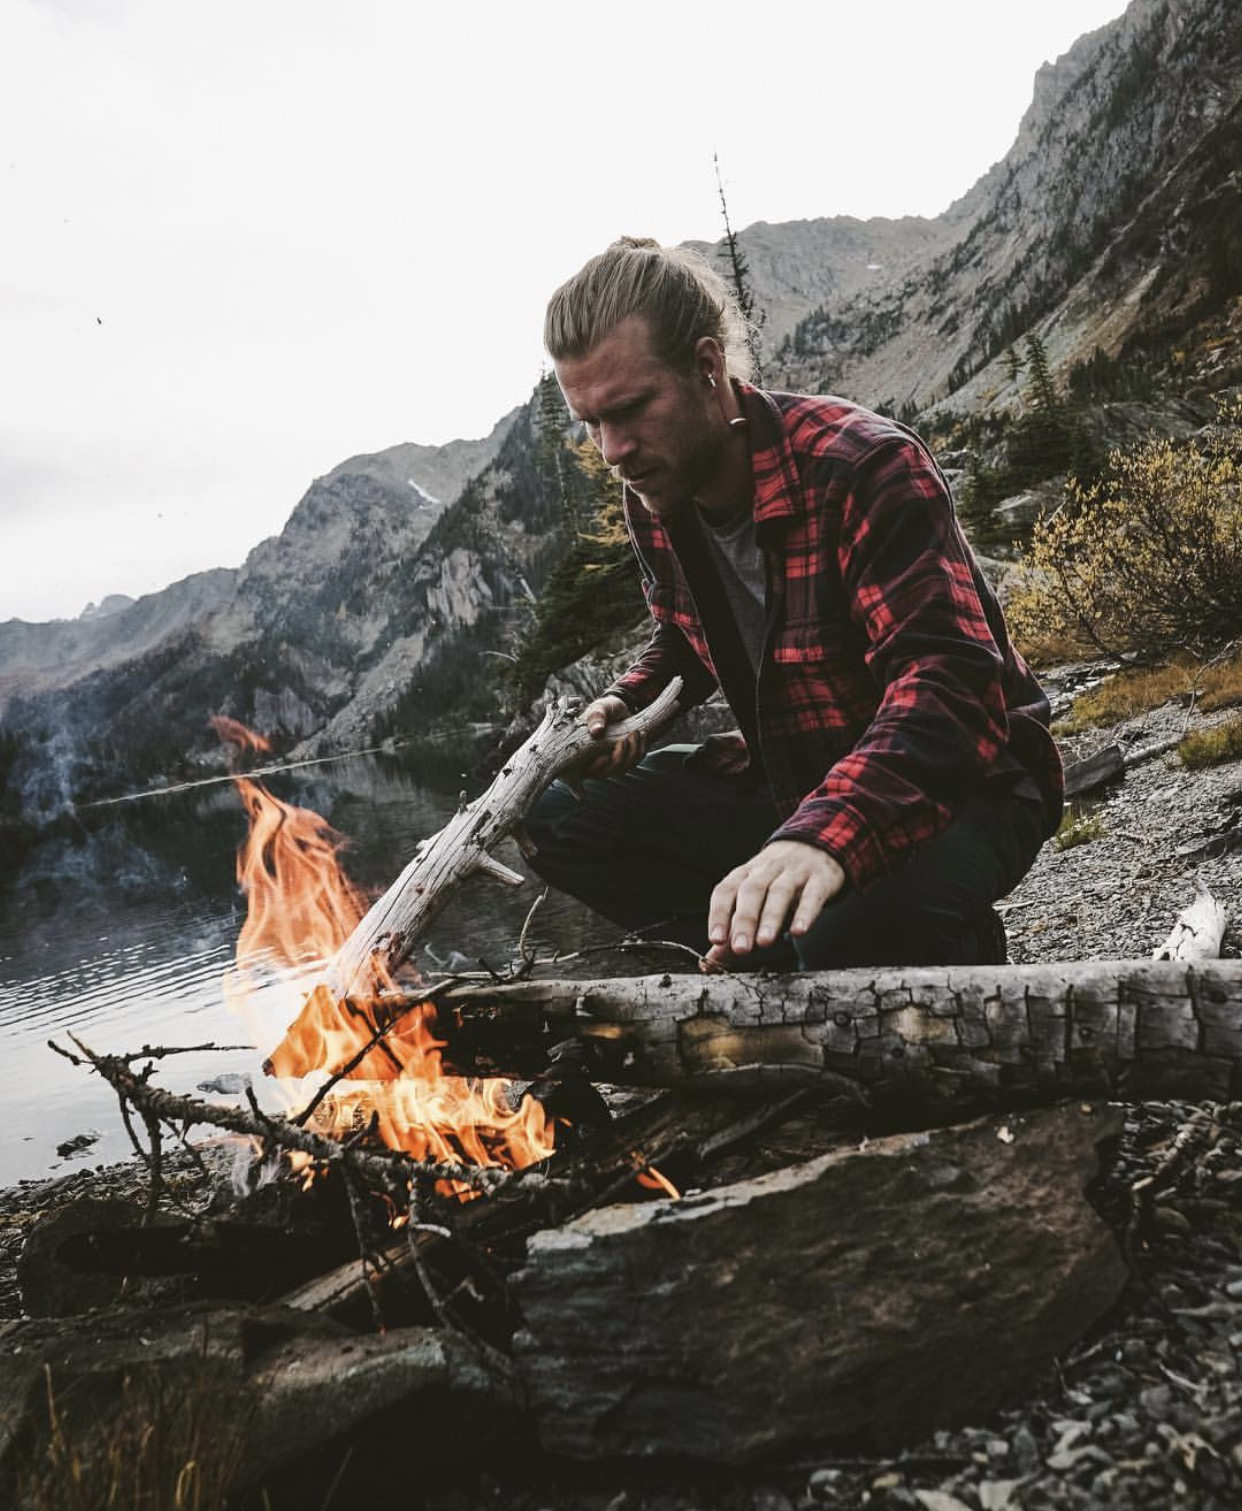 Jamo Gilbert - Jamo is our camp cook. His food is almost as good looking as he is. Not only is Jamo a phenomenal camp chef, but he is also a rock climber and a talented painter. Jamo can't wait to cook some beautiful camp meals for you.@jamogilbs